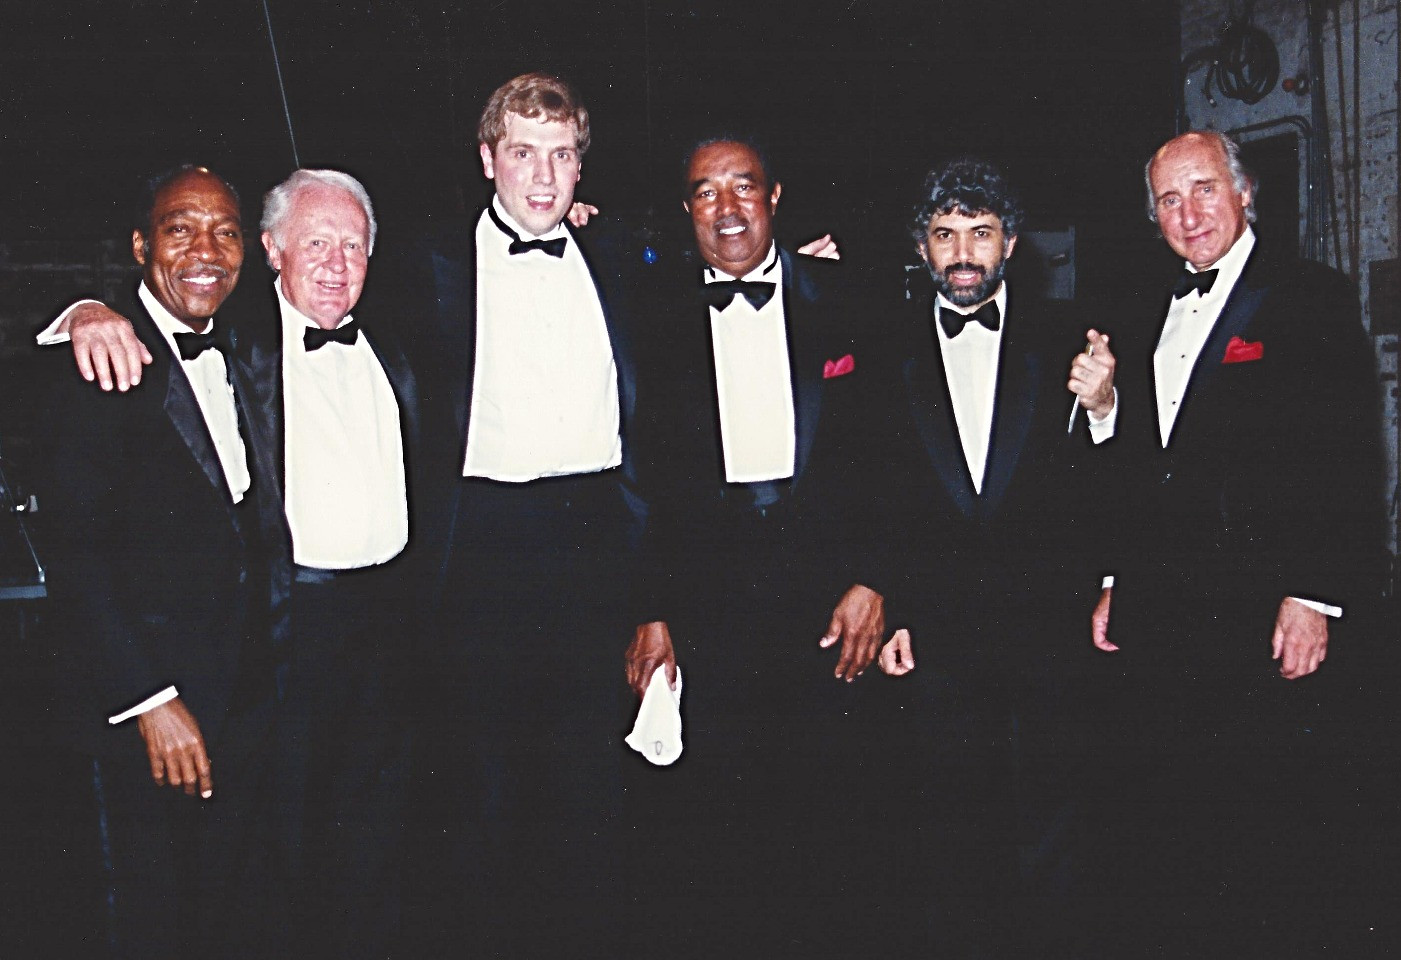 Monty, Ray, Herb, Johnny Frigo, Joe Wilder and Chuck Red